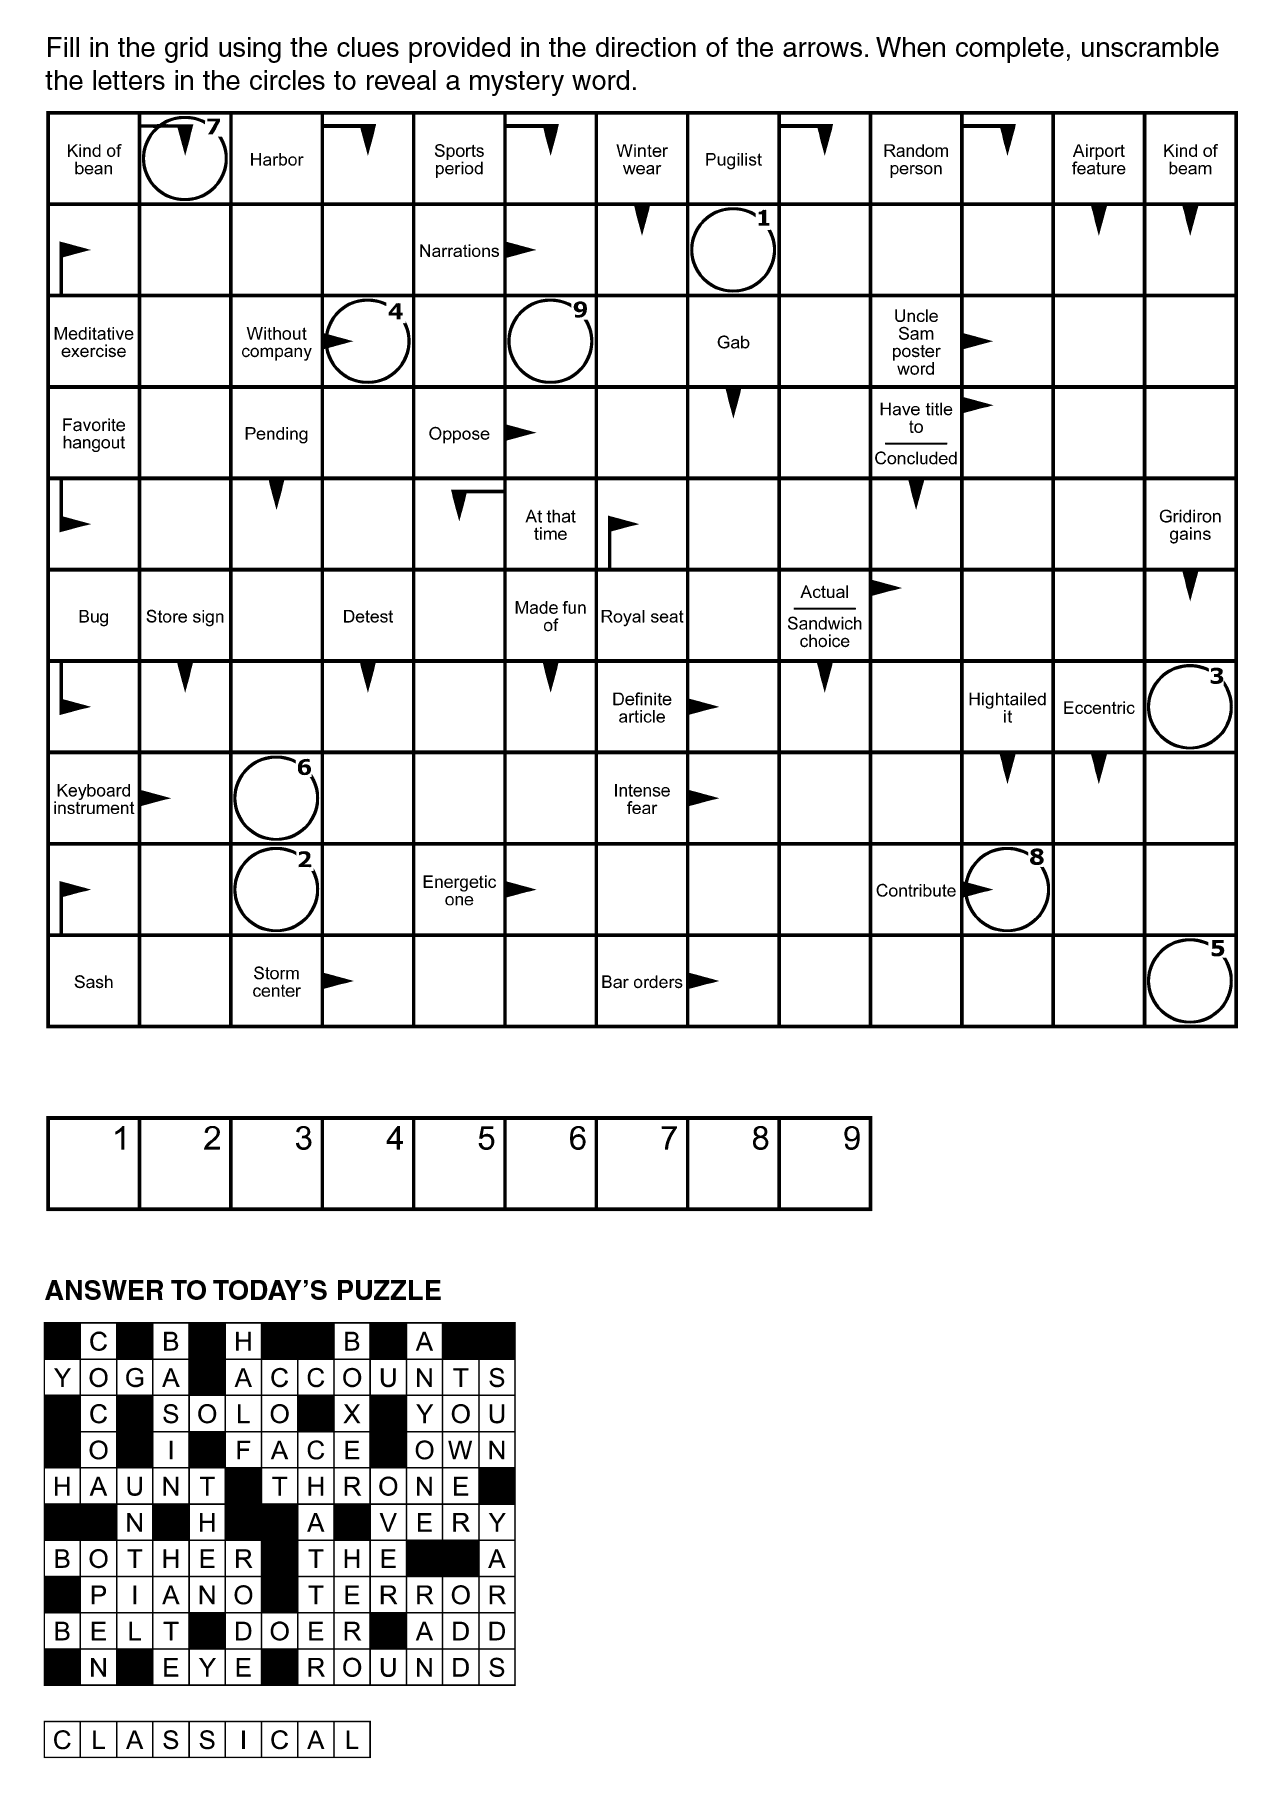 arrowword puzzles digital audio file that can be downloaded crossword puzzles arrowword